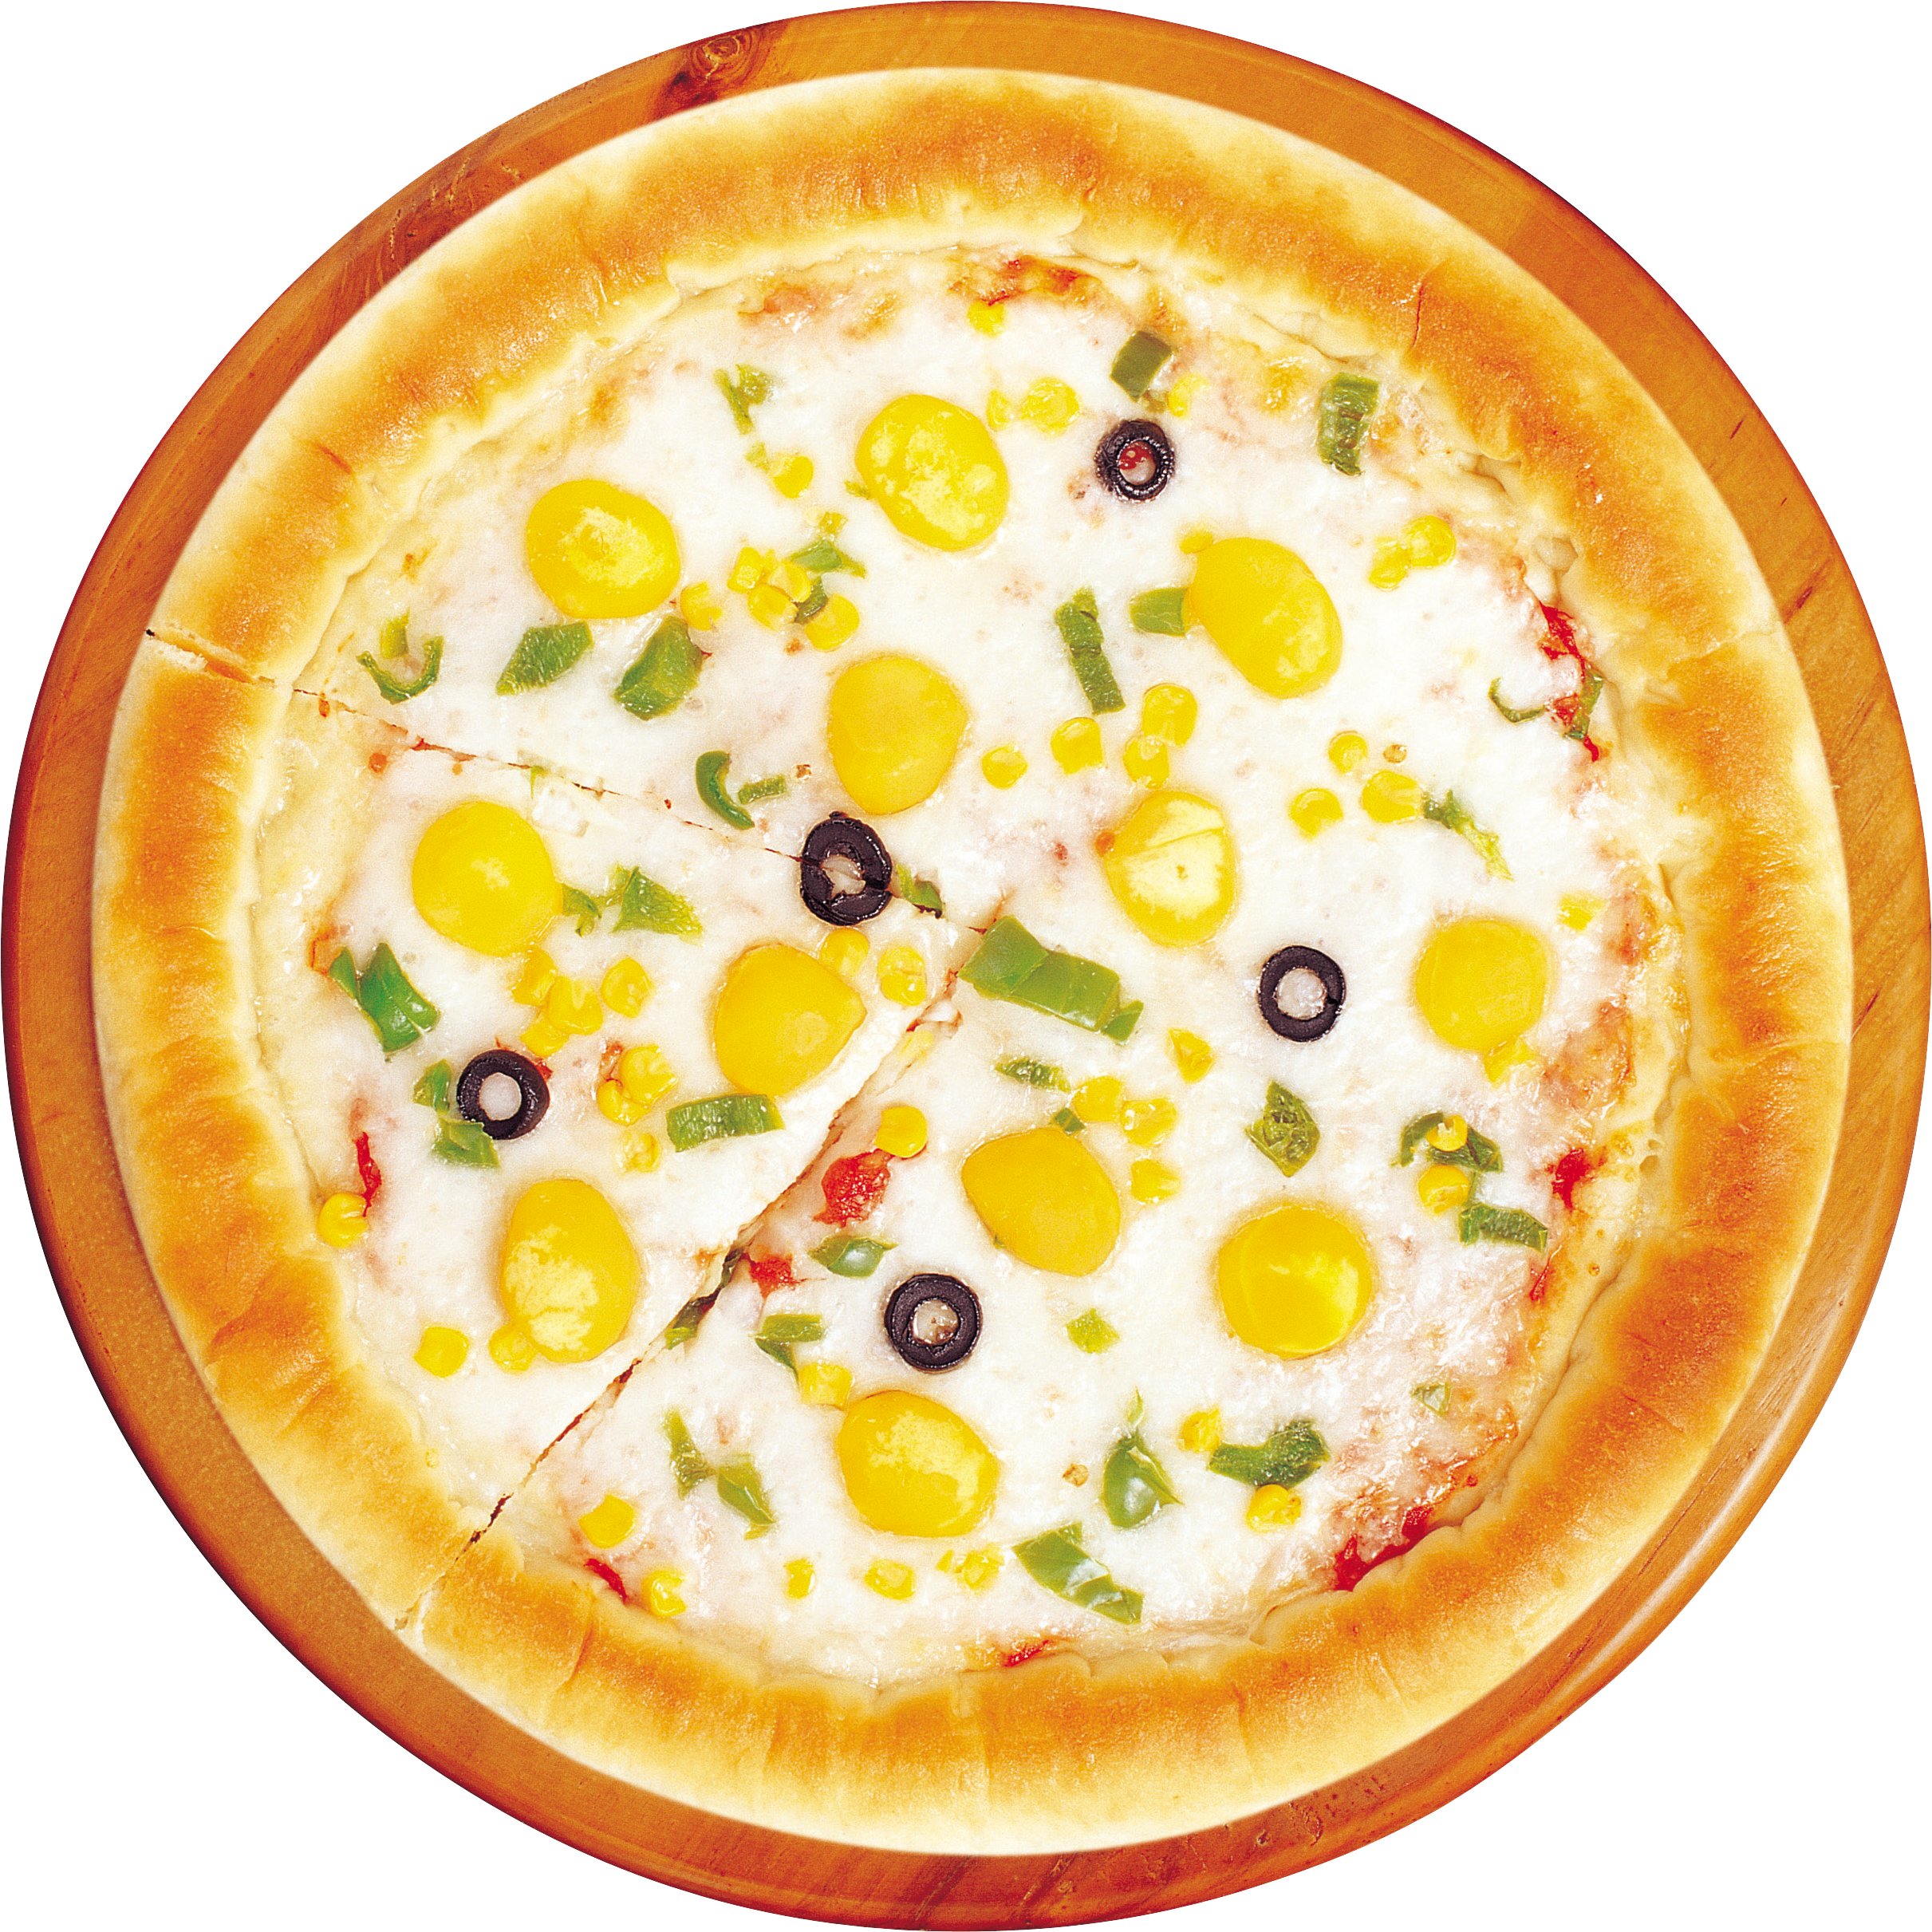 Png images free download. Money clipart pizza